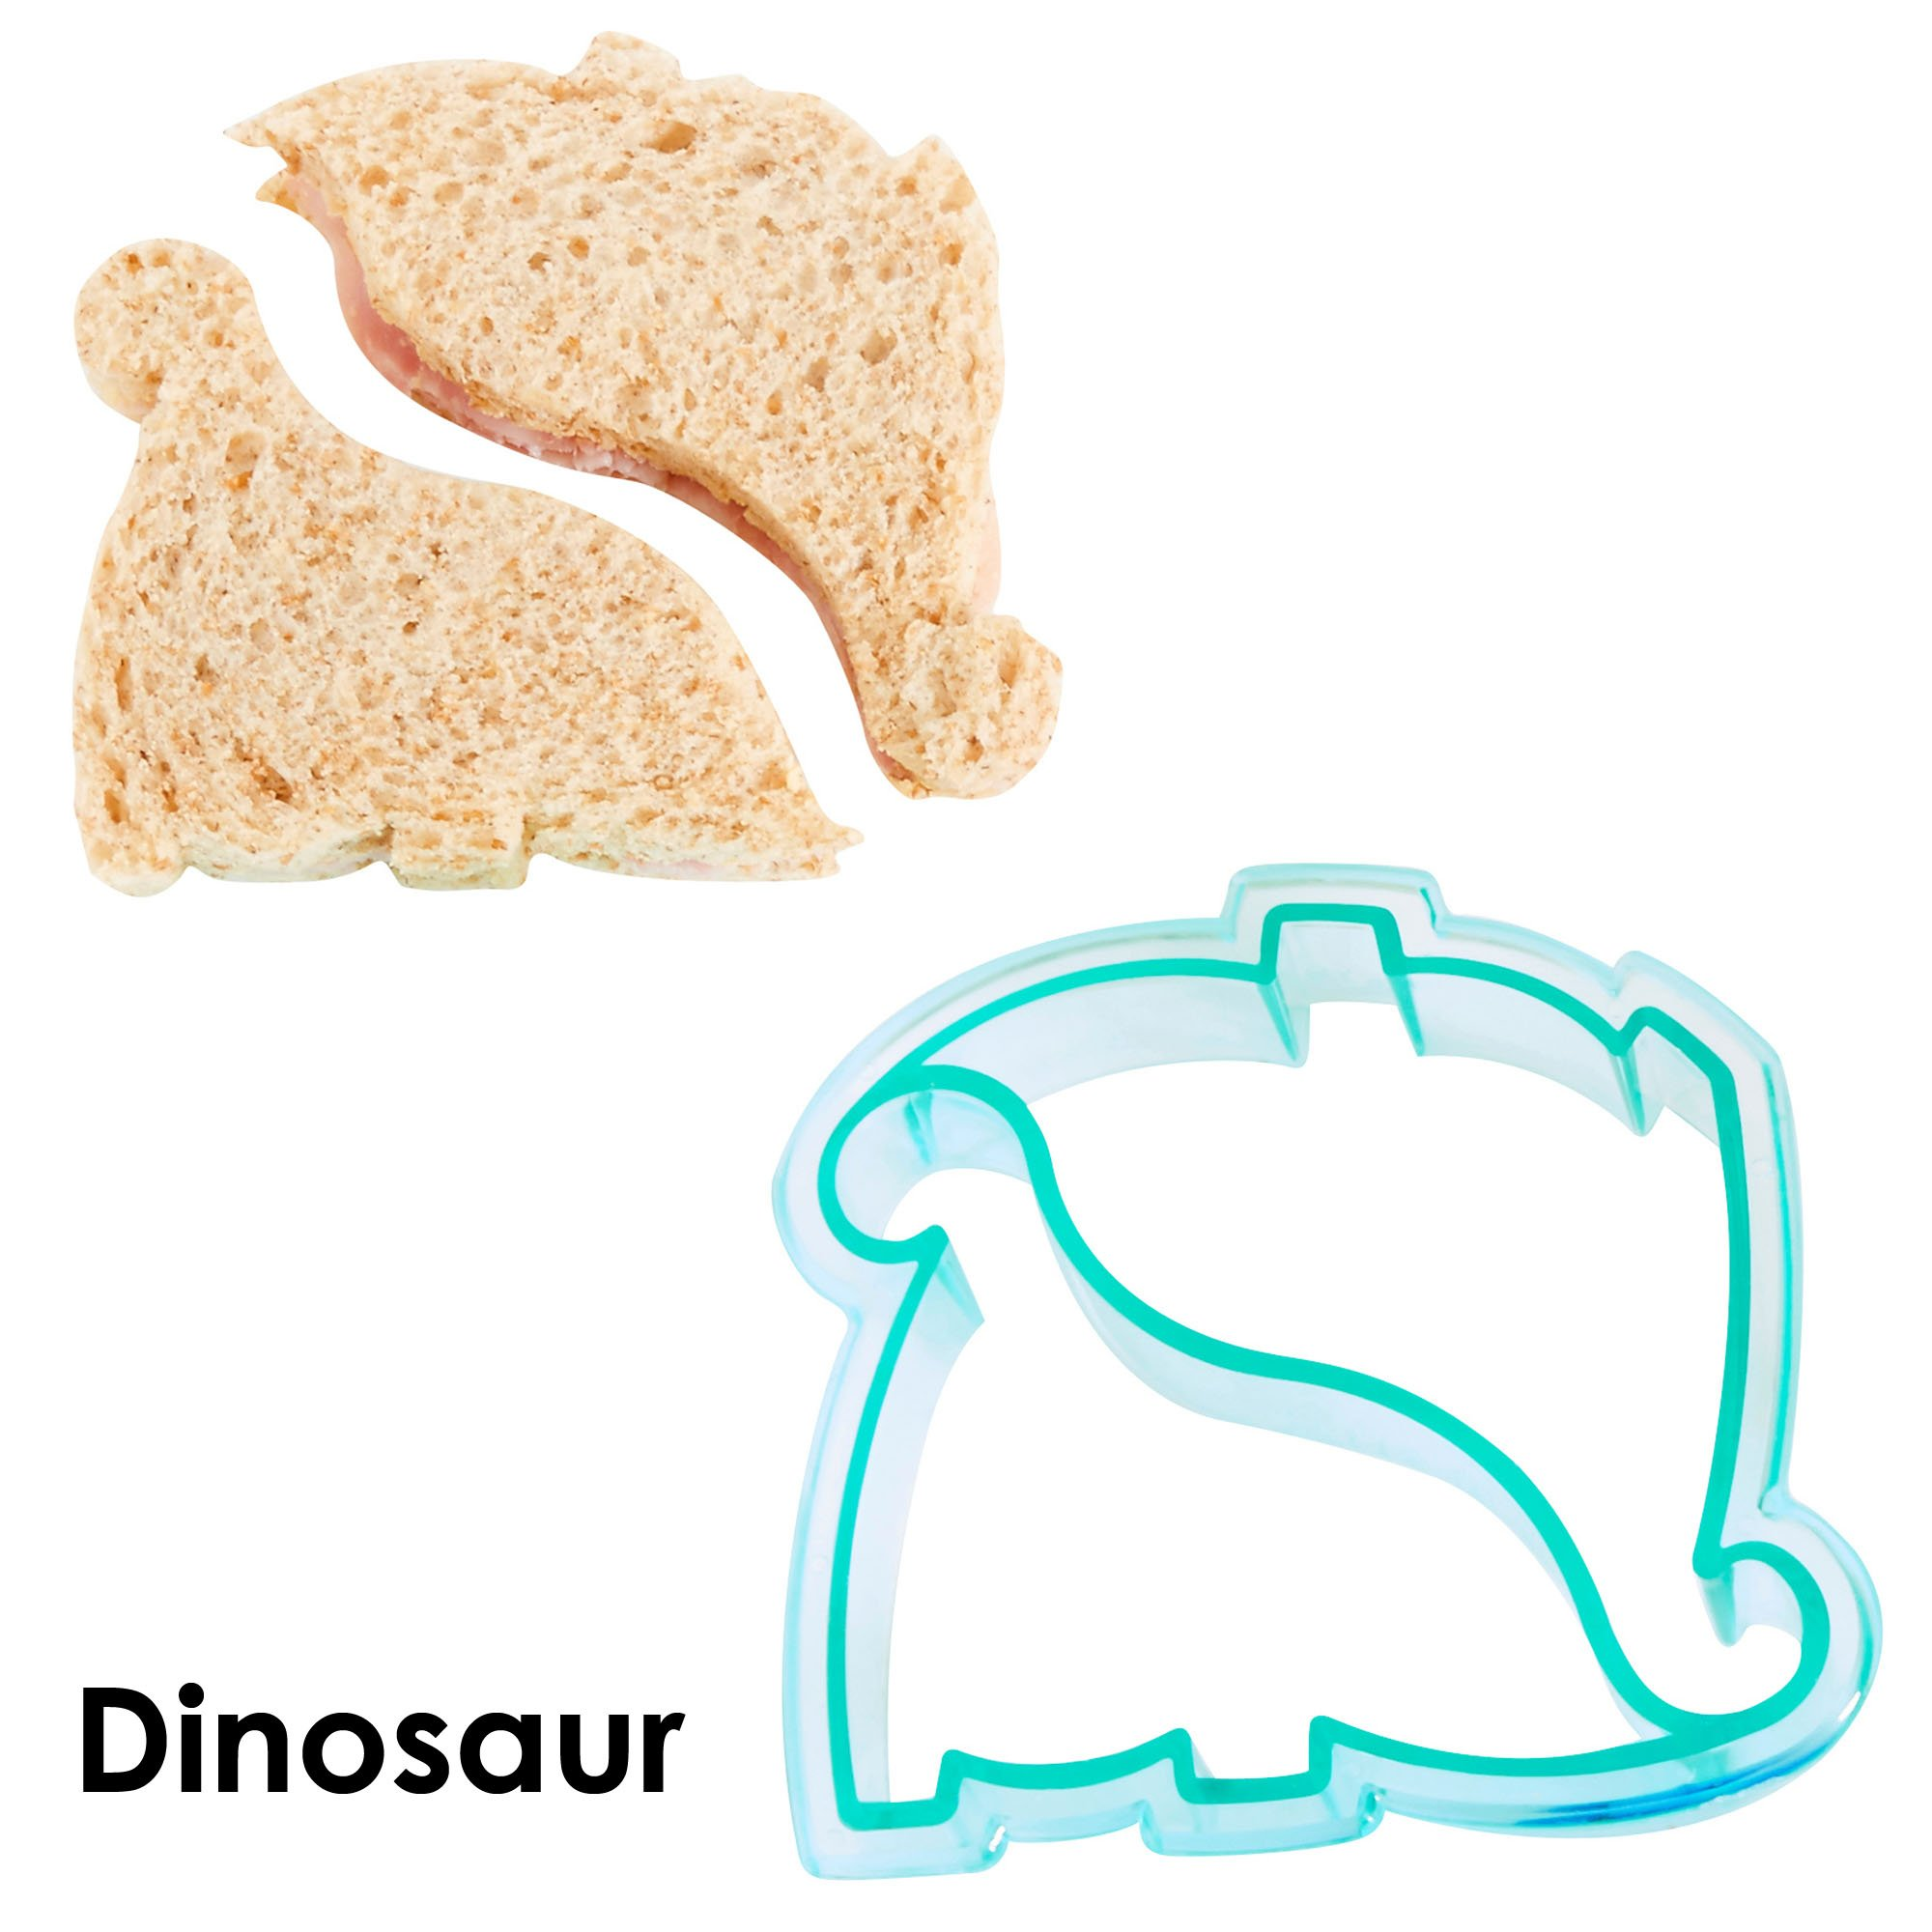 VonShef Fun Cookie Cake and Sandwich Cutter Shapes for Kids, Set of 5 Shapes Dinosaur, Dolphin, Heart, Star and Train, Multi Colored, 5pc by VonShef (Image #6)